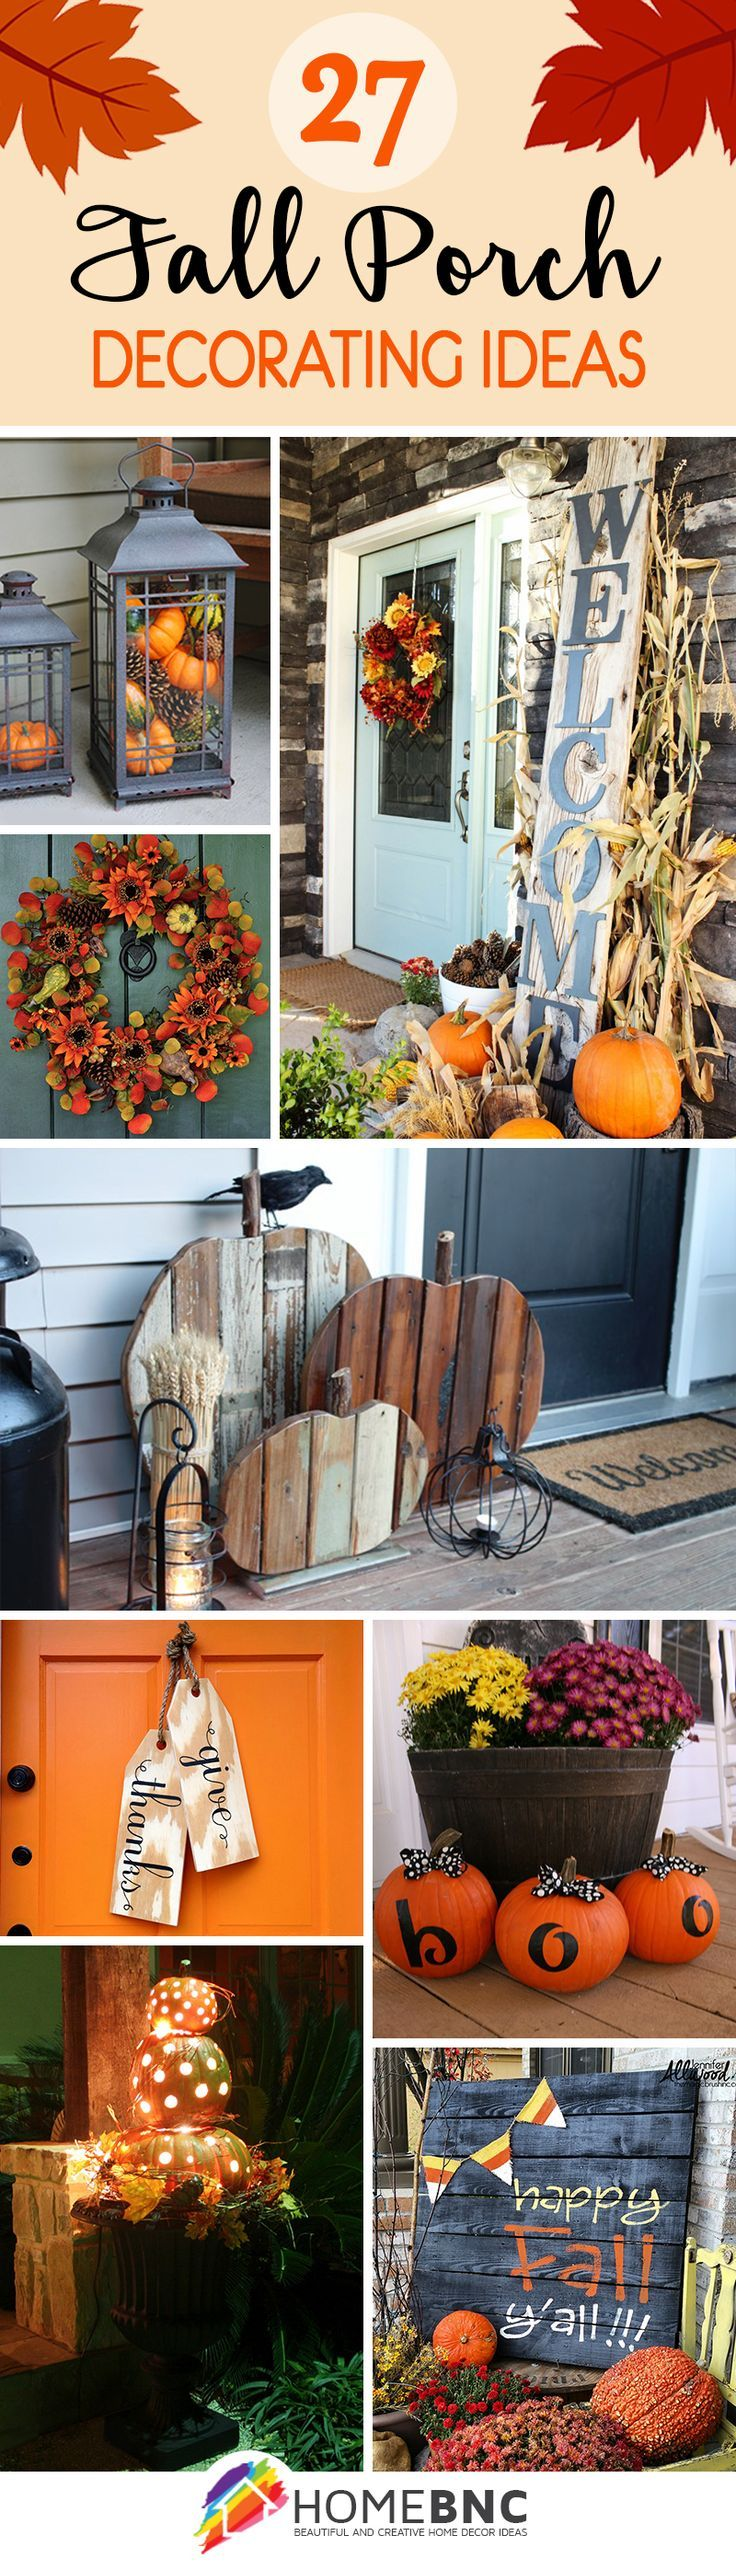 Need some help decorating your porch this fall? Check out these ideas and let your creativity lead the way!